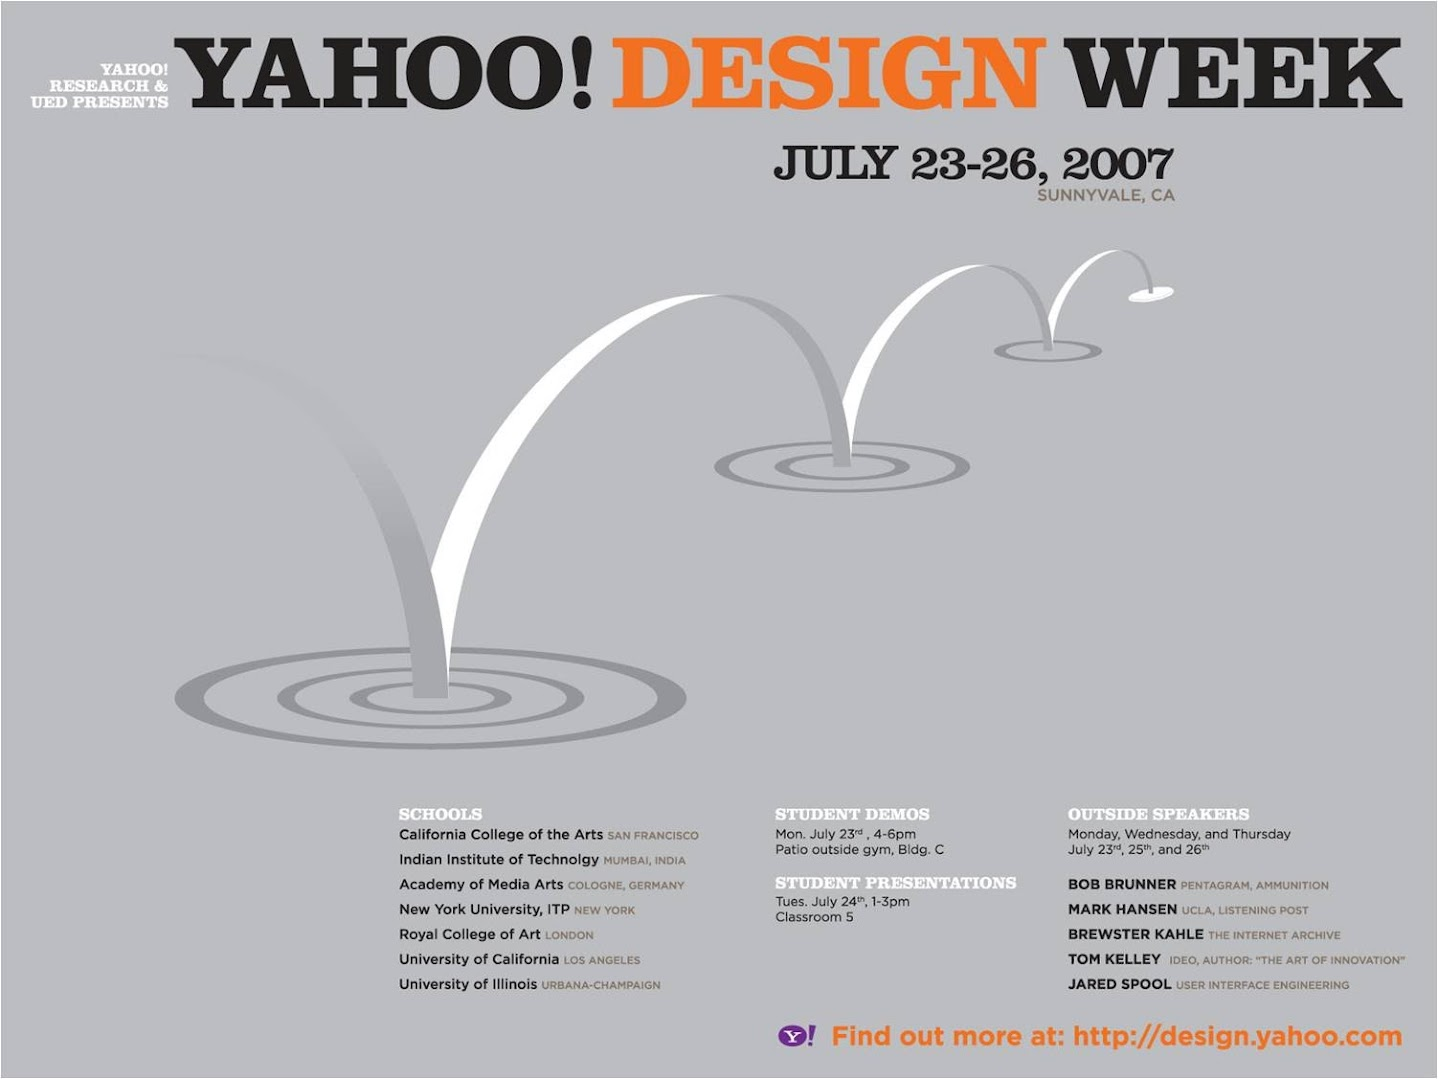 Yahoo! Design Week